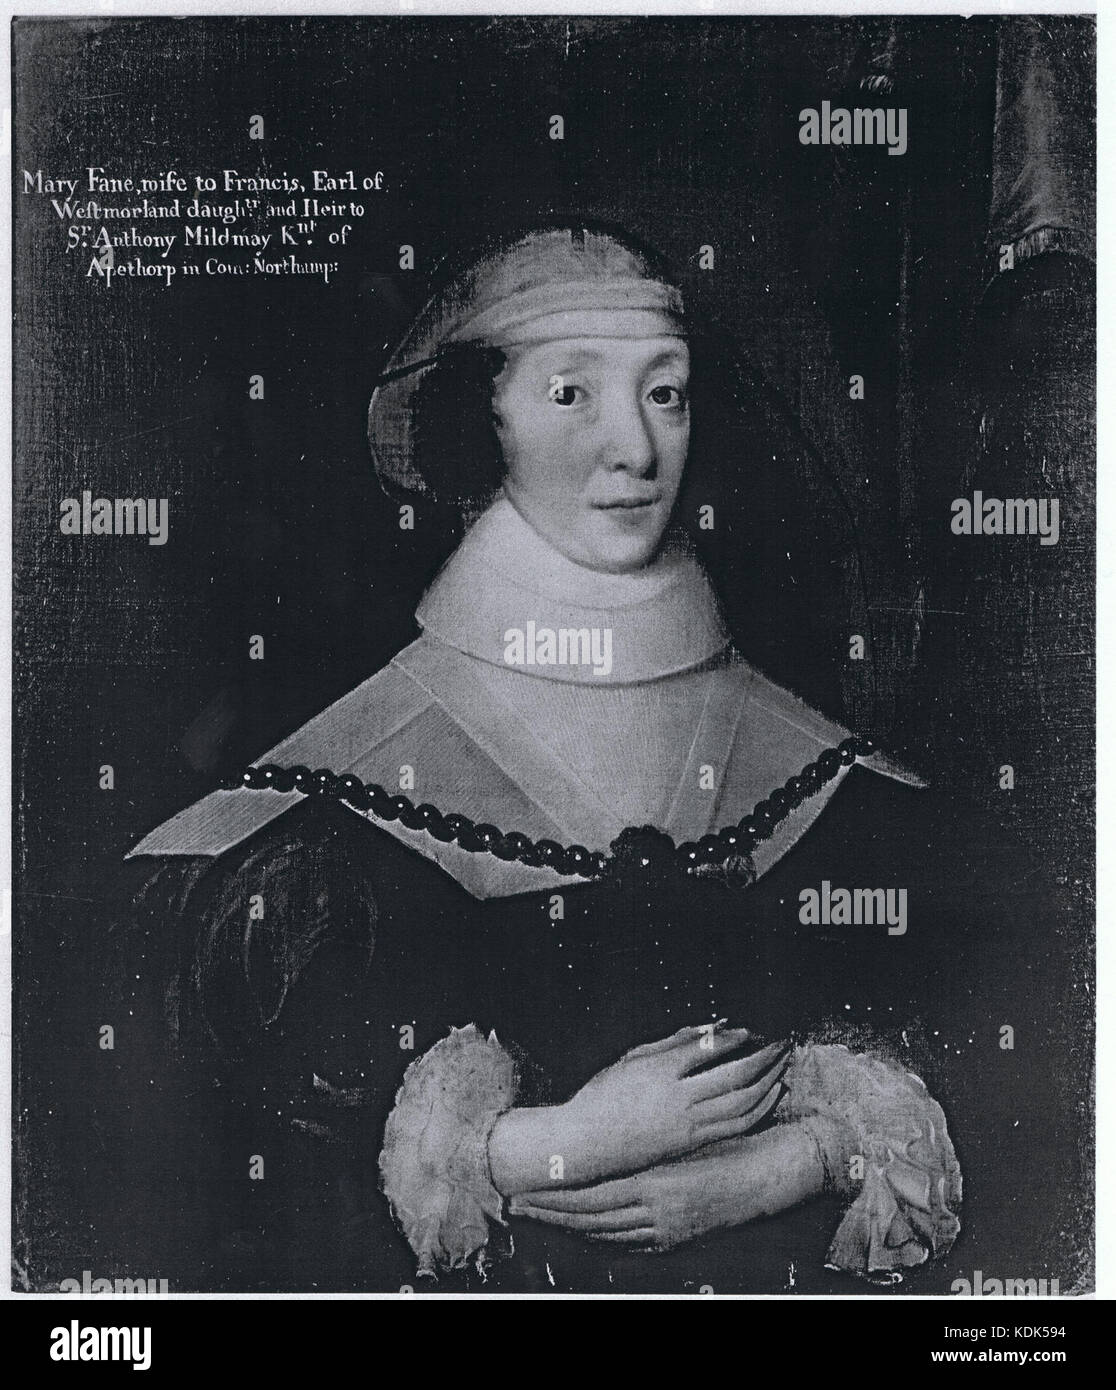 Mary Fane, wife to Francis, Earl of Westmorland, daughter and Heir to Sir Anthony Mildmay, Kt of Apethorp in County Northampton Stock Photo